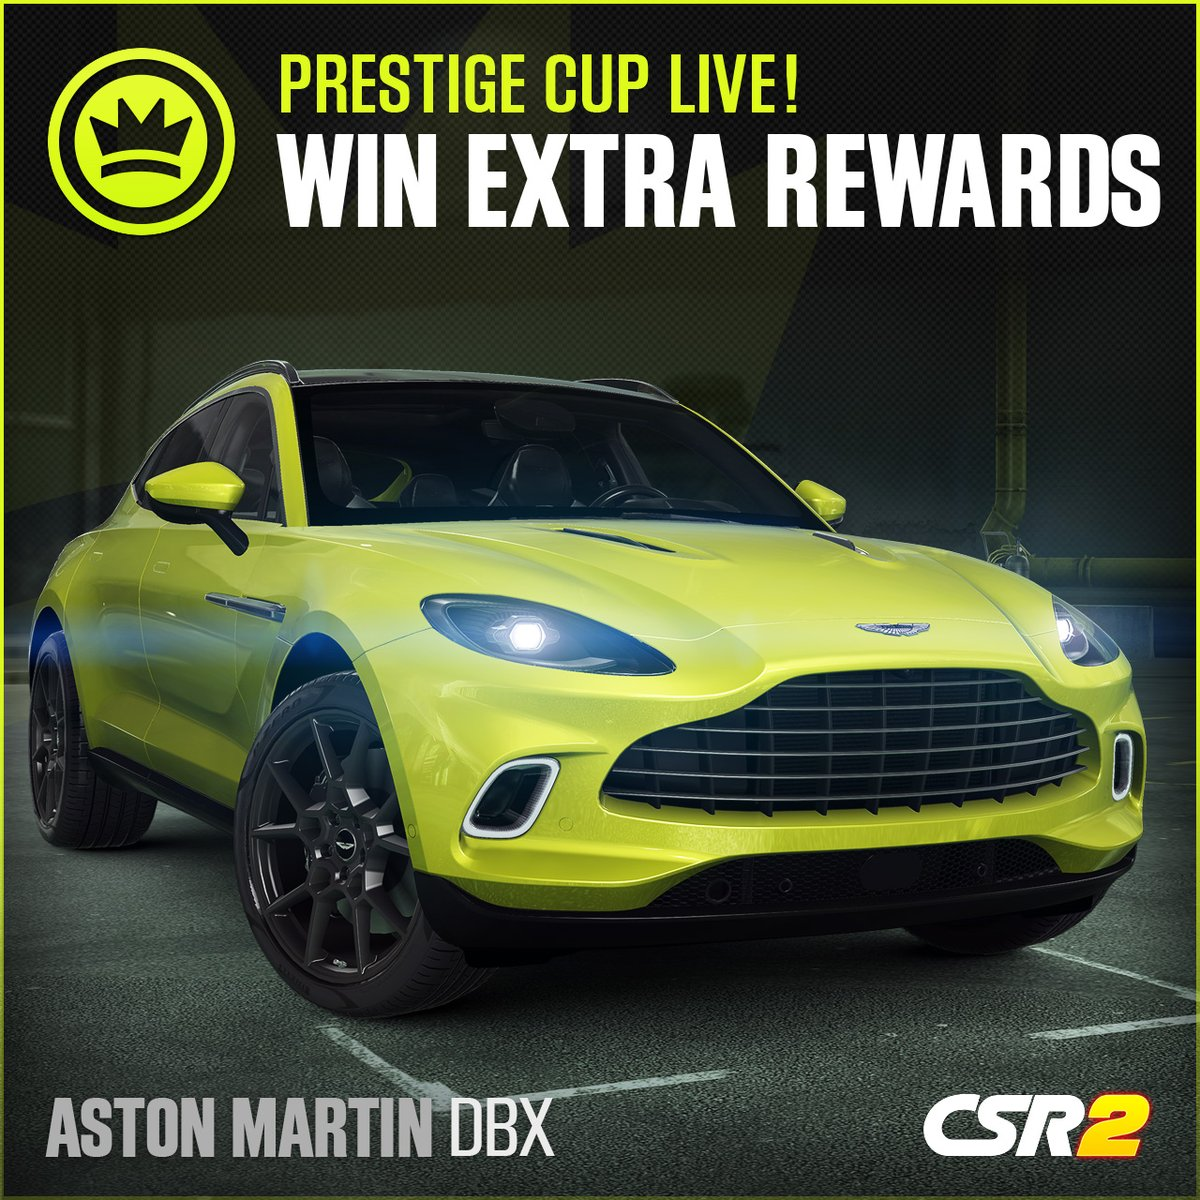 A modern British beauty is the car of the moment, can you be your best in the @csrracing @astonmartin DBX? #CSR2 #AstonMartin